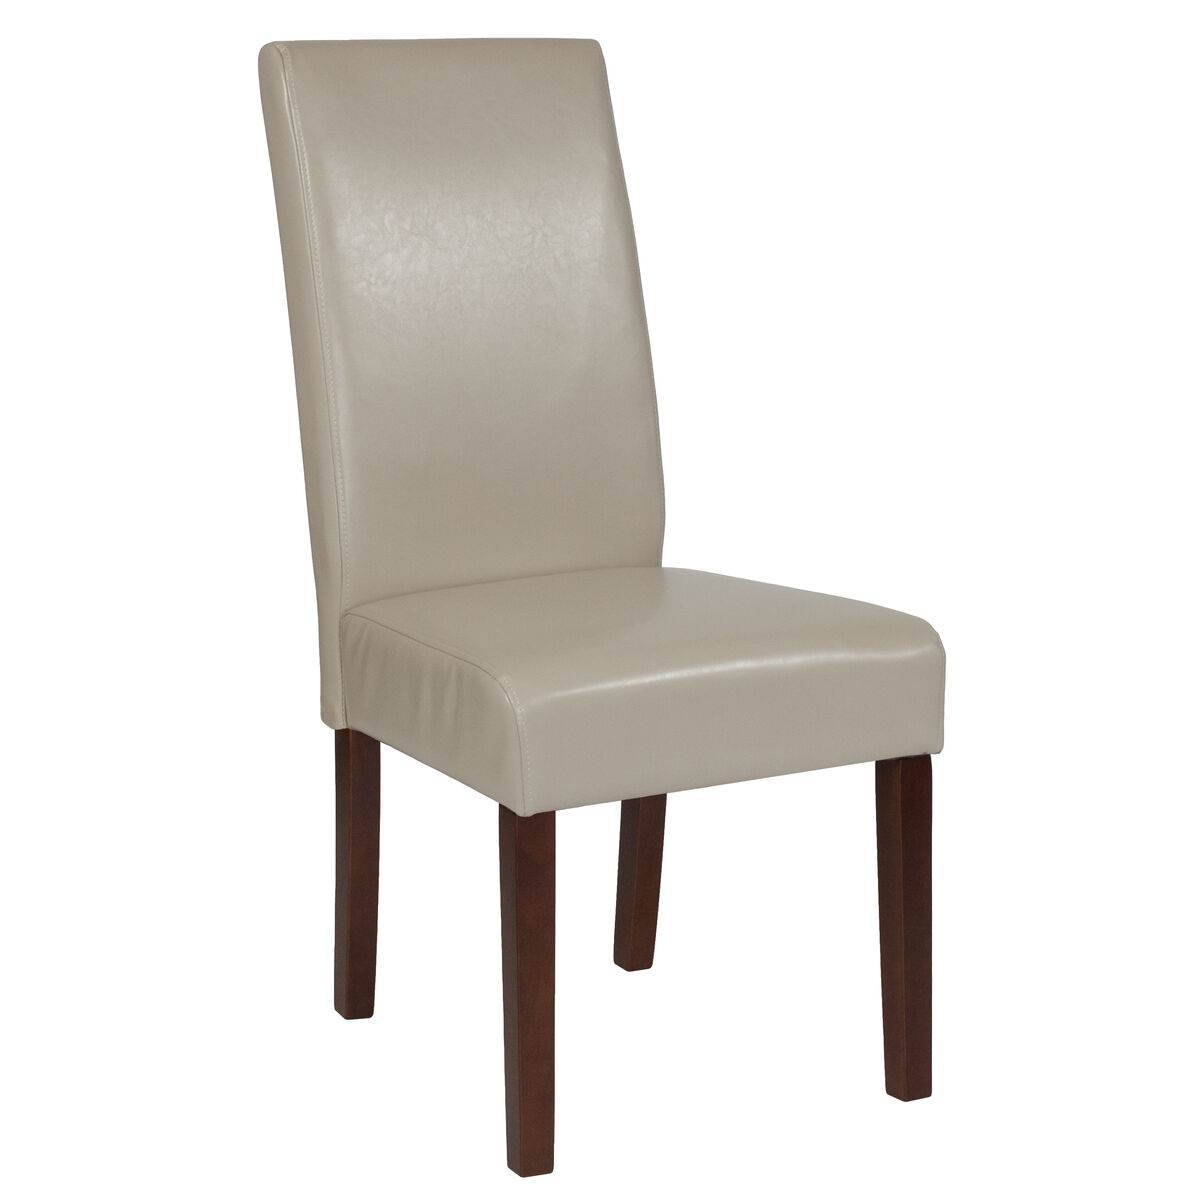 Beige Leather Parsons Chair Qy A37 9061 Bgl Gg